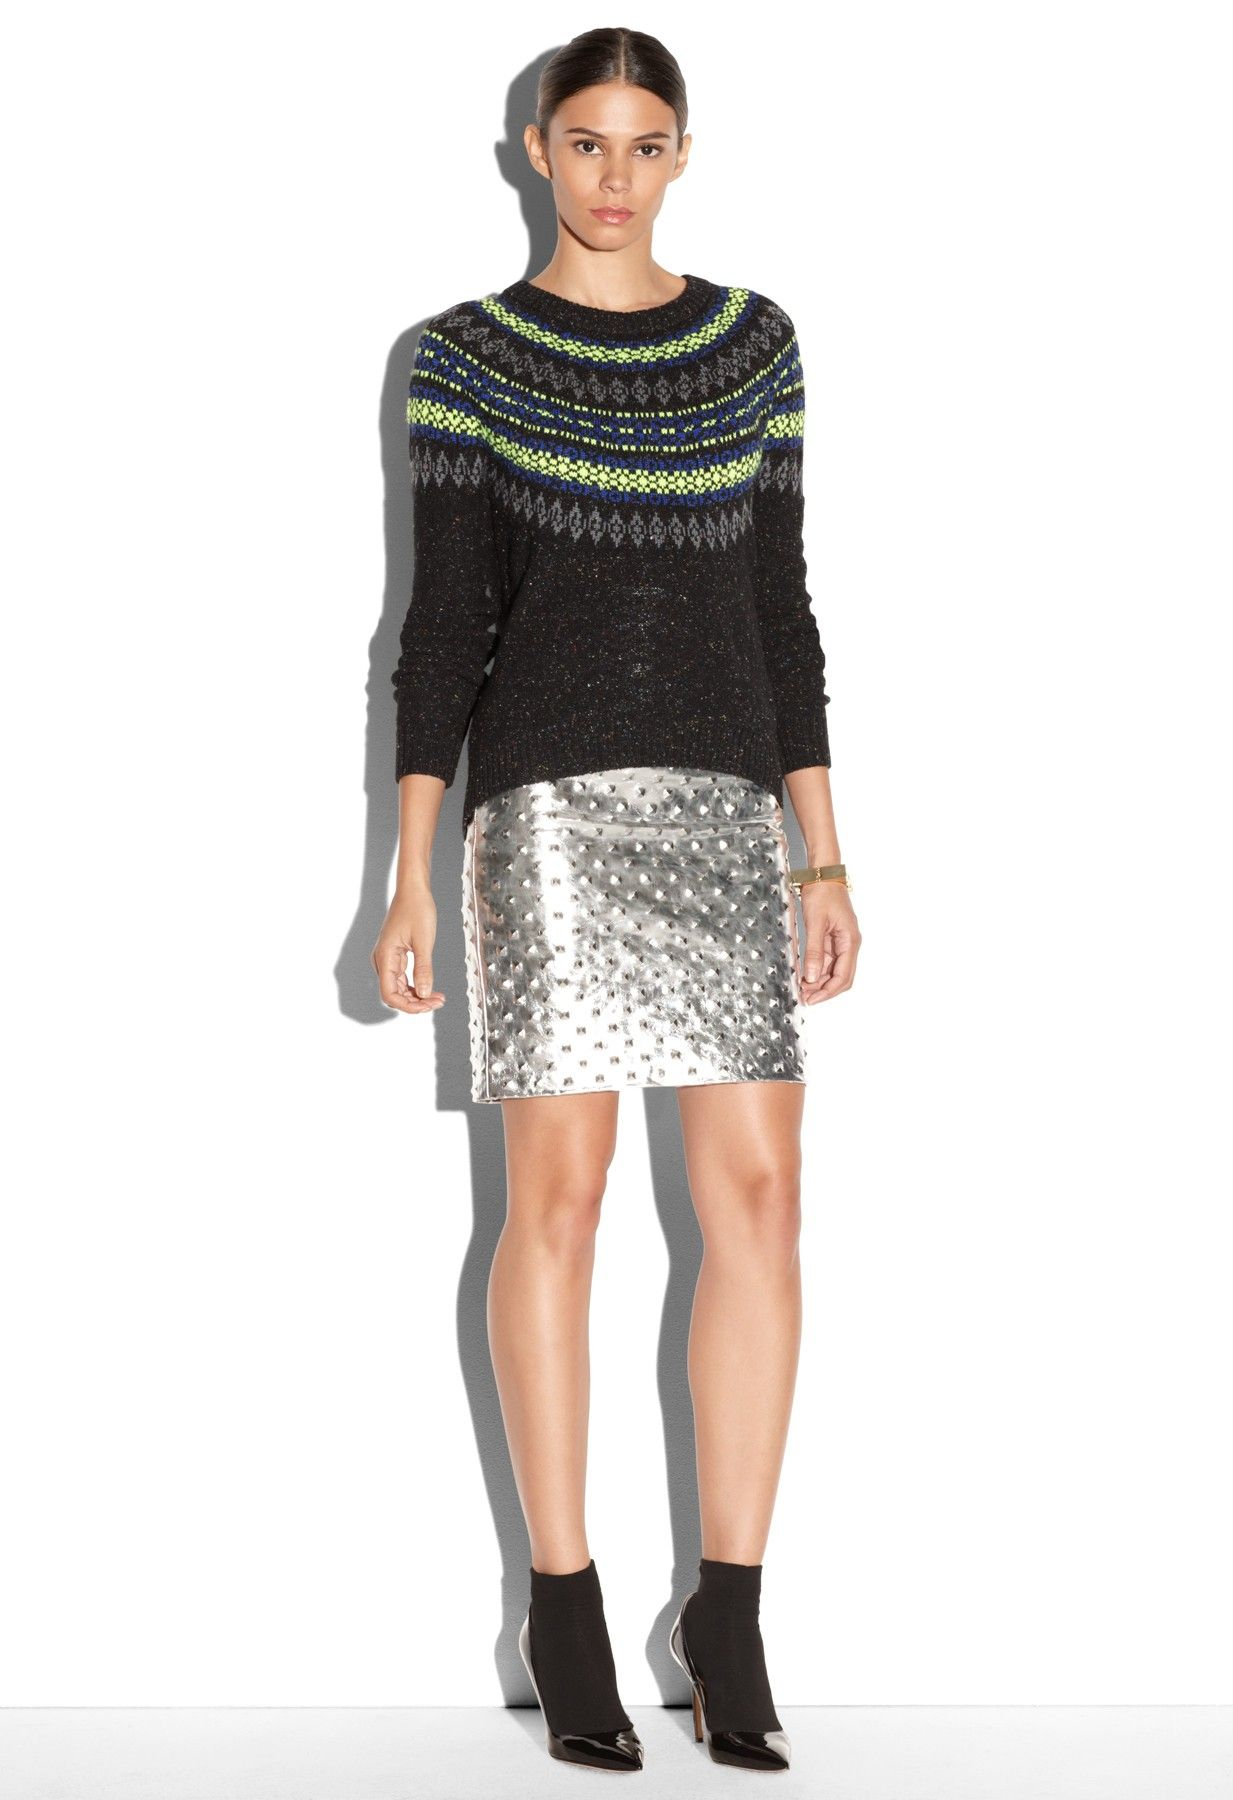 NEON FAIR ISLE SWEATER - Sweaters - Shop By Category MILLY NY | My ...